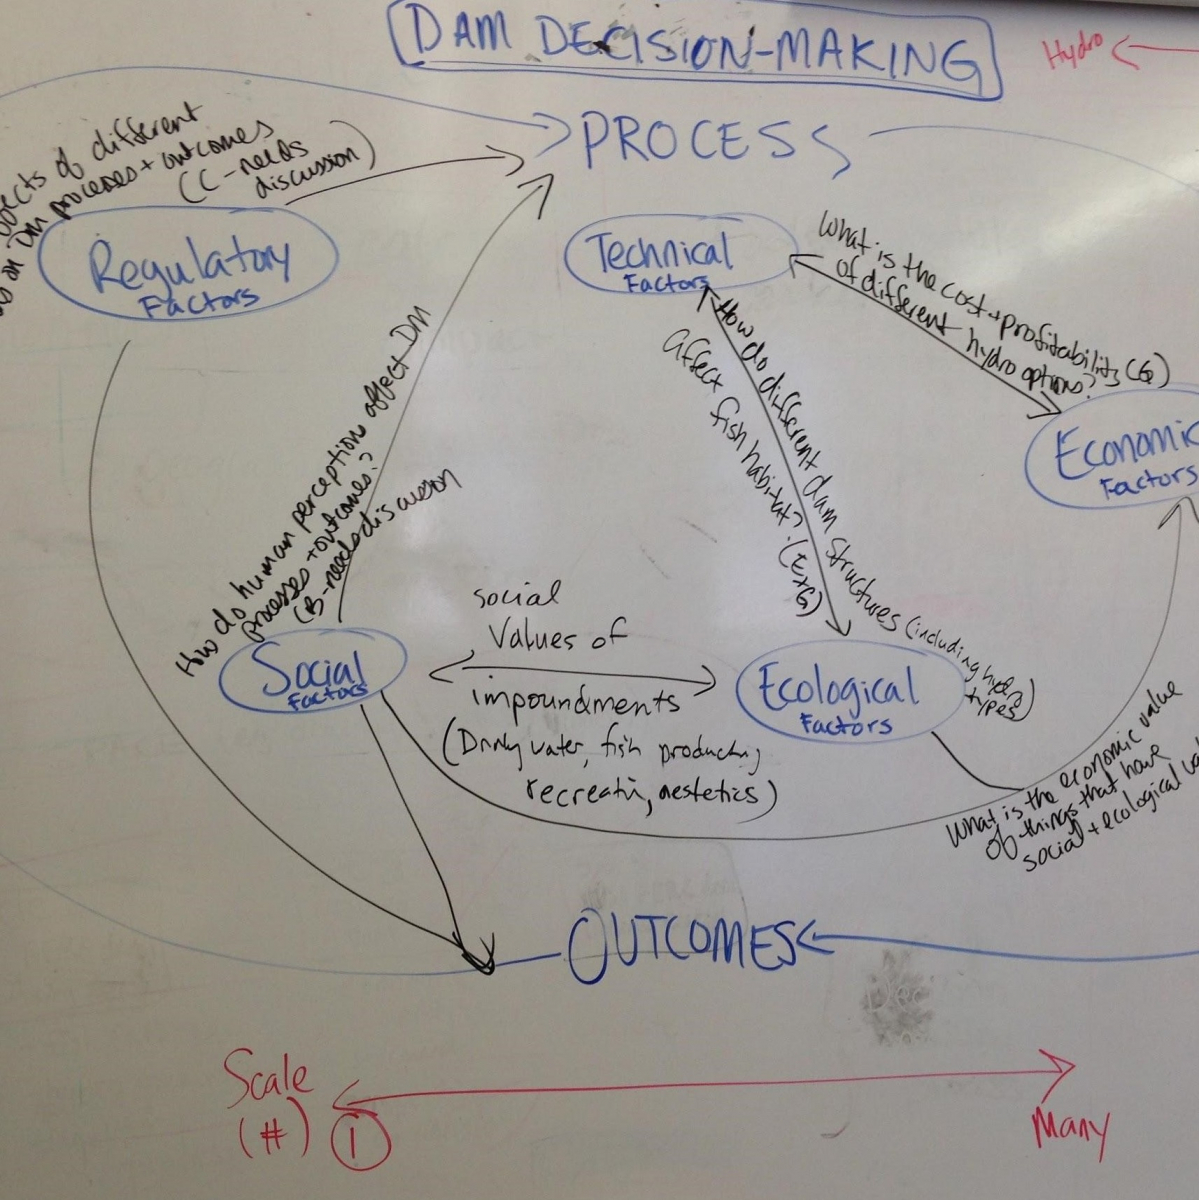 dam decision making whiteboard diagram